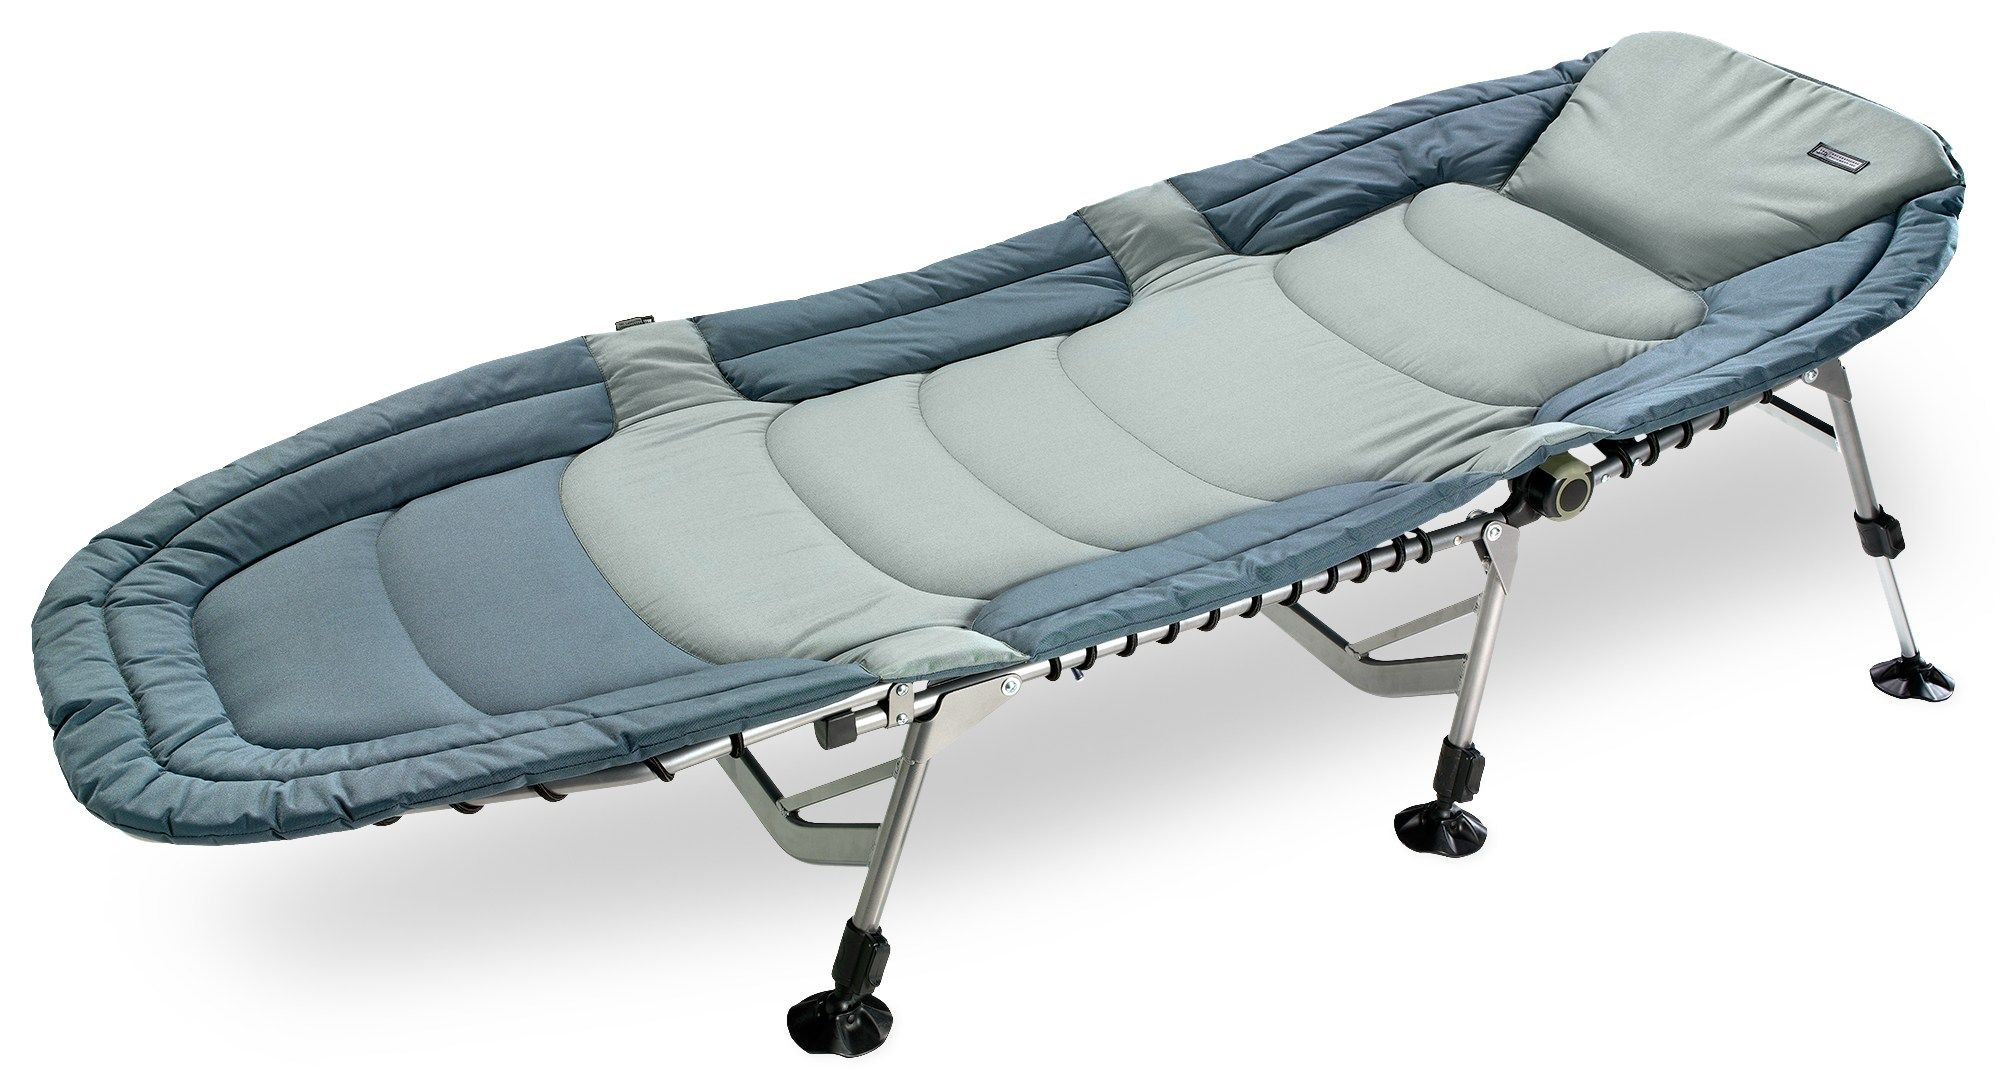 Comfort Cot With Images Camping Cot Camping Bed Camping